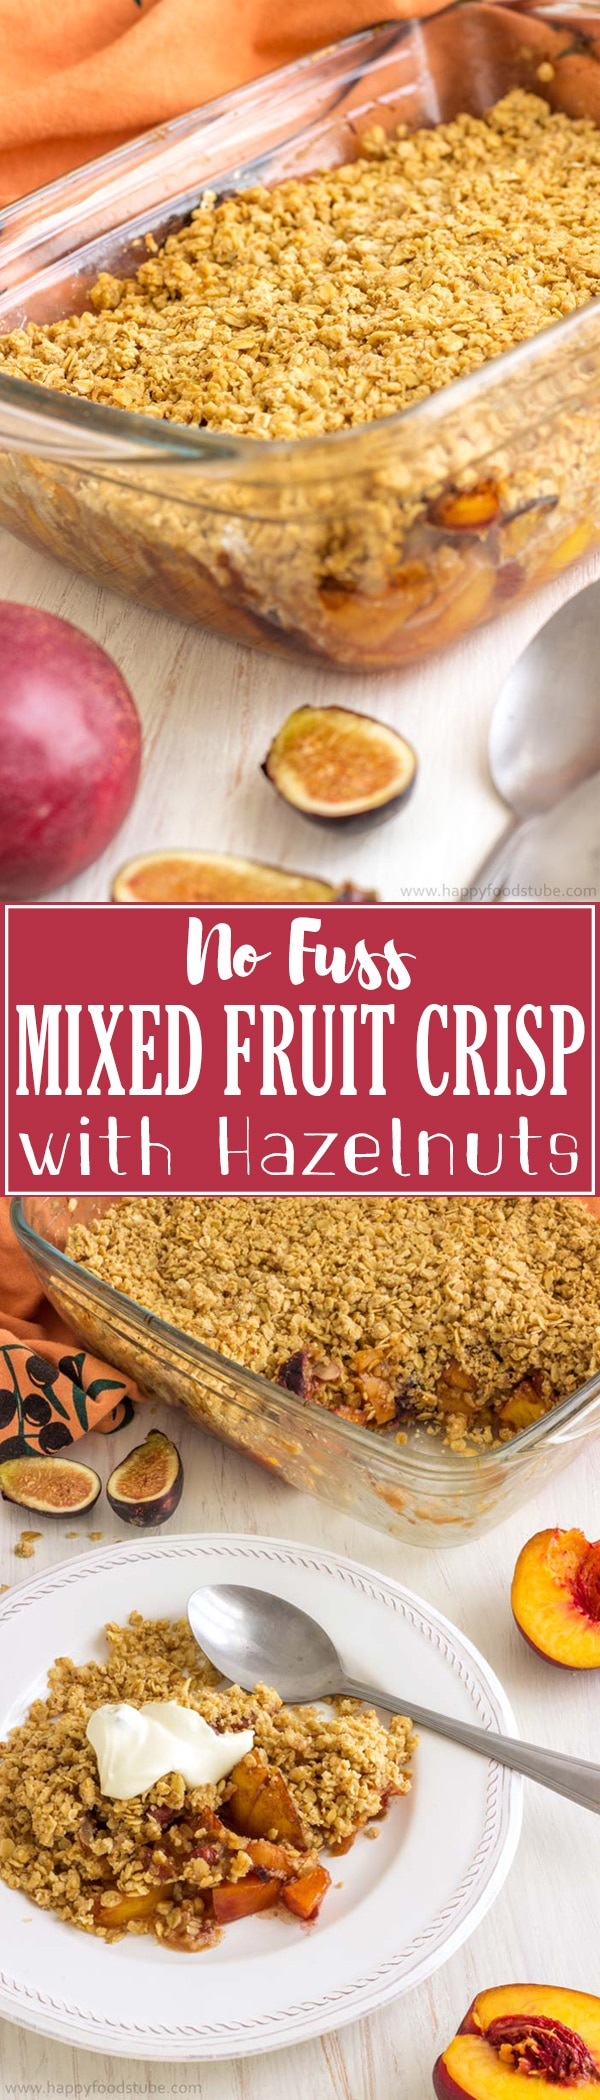 No Fuss Mixed Fruit Crisp with Hazelnuts is the right dessert when you are a busy bee but still need a tasty dessert that will please the crowds. Simple ingredients